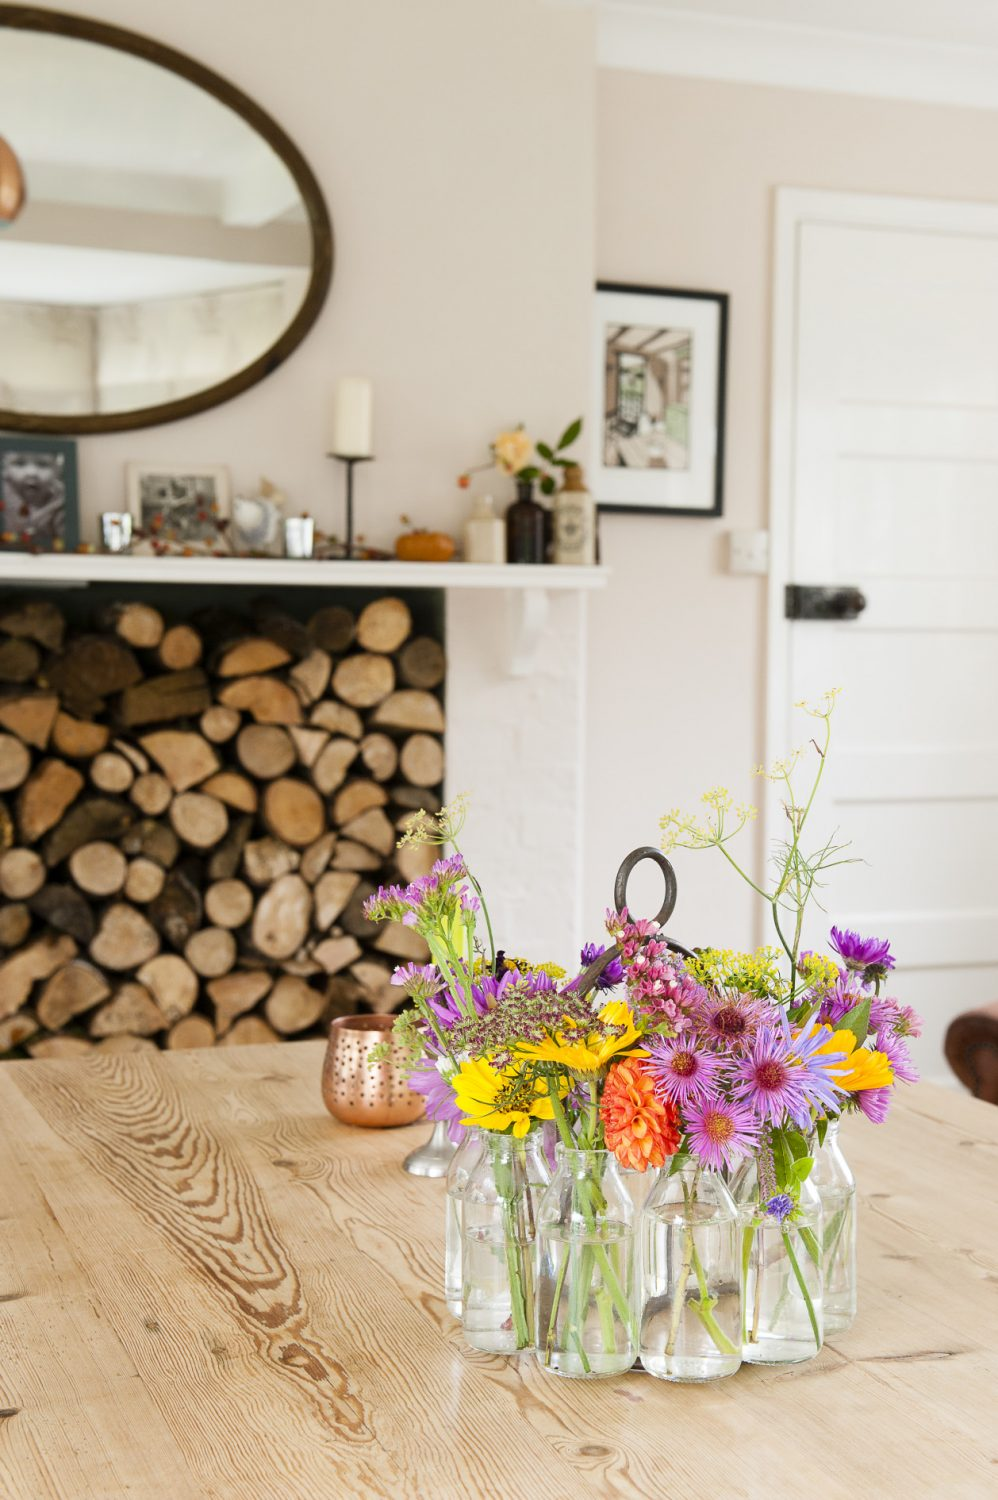 There is no shortage of flowers for the dining table in this cottage